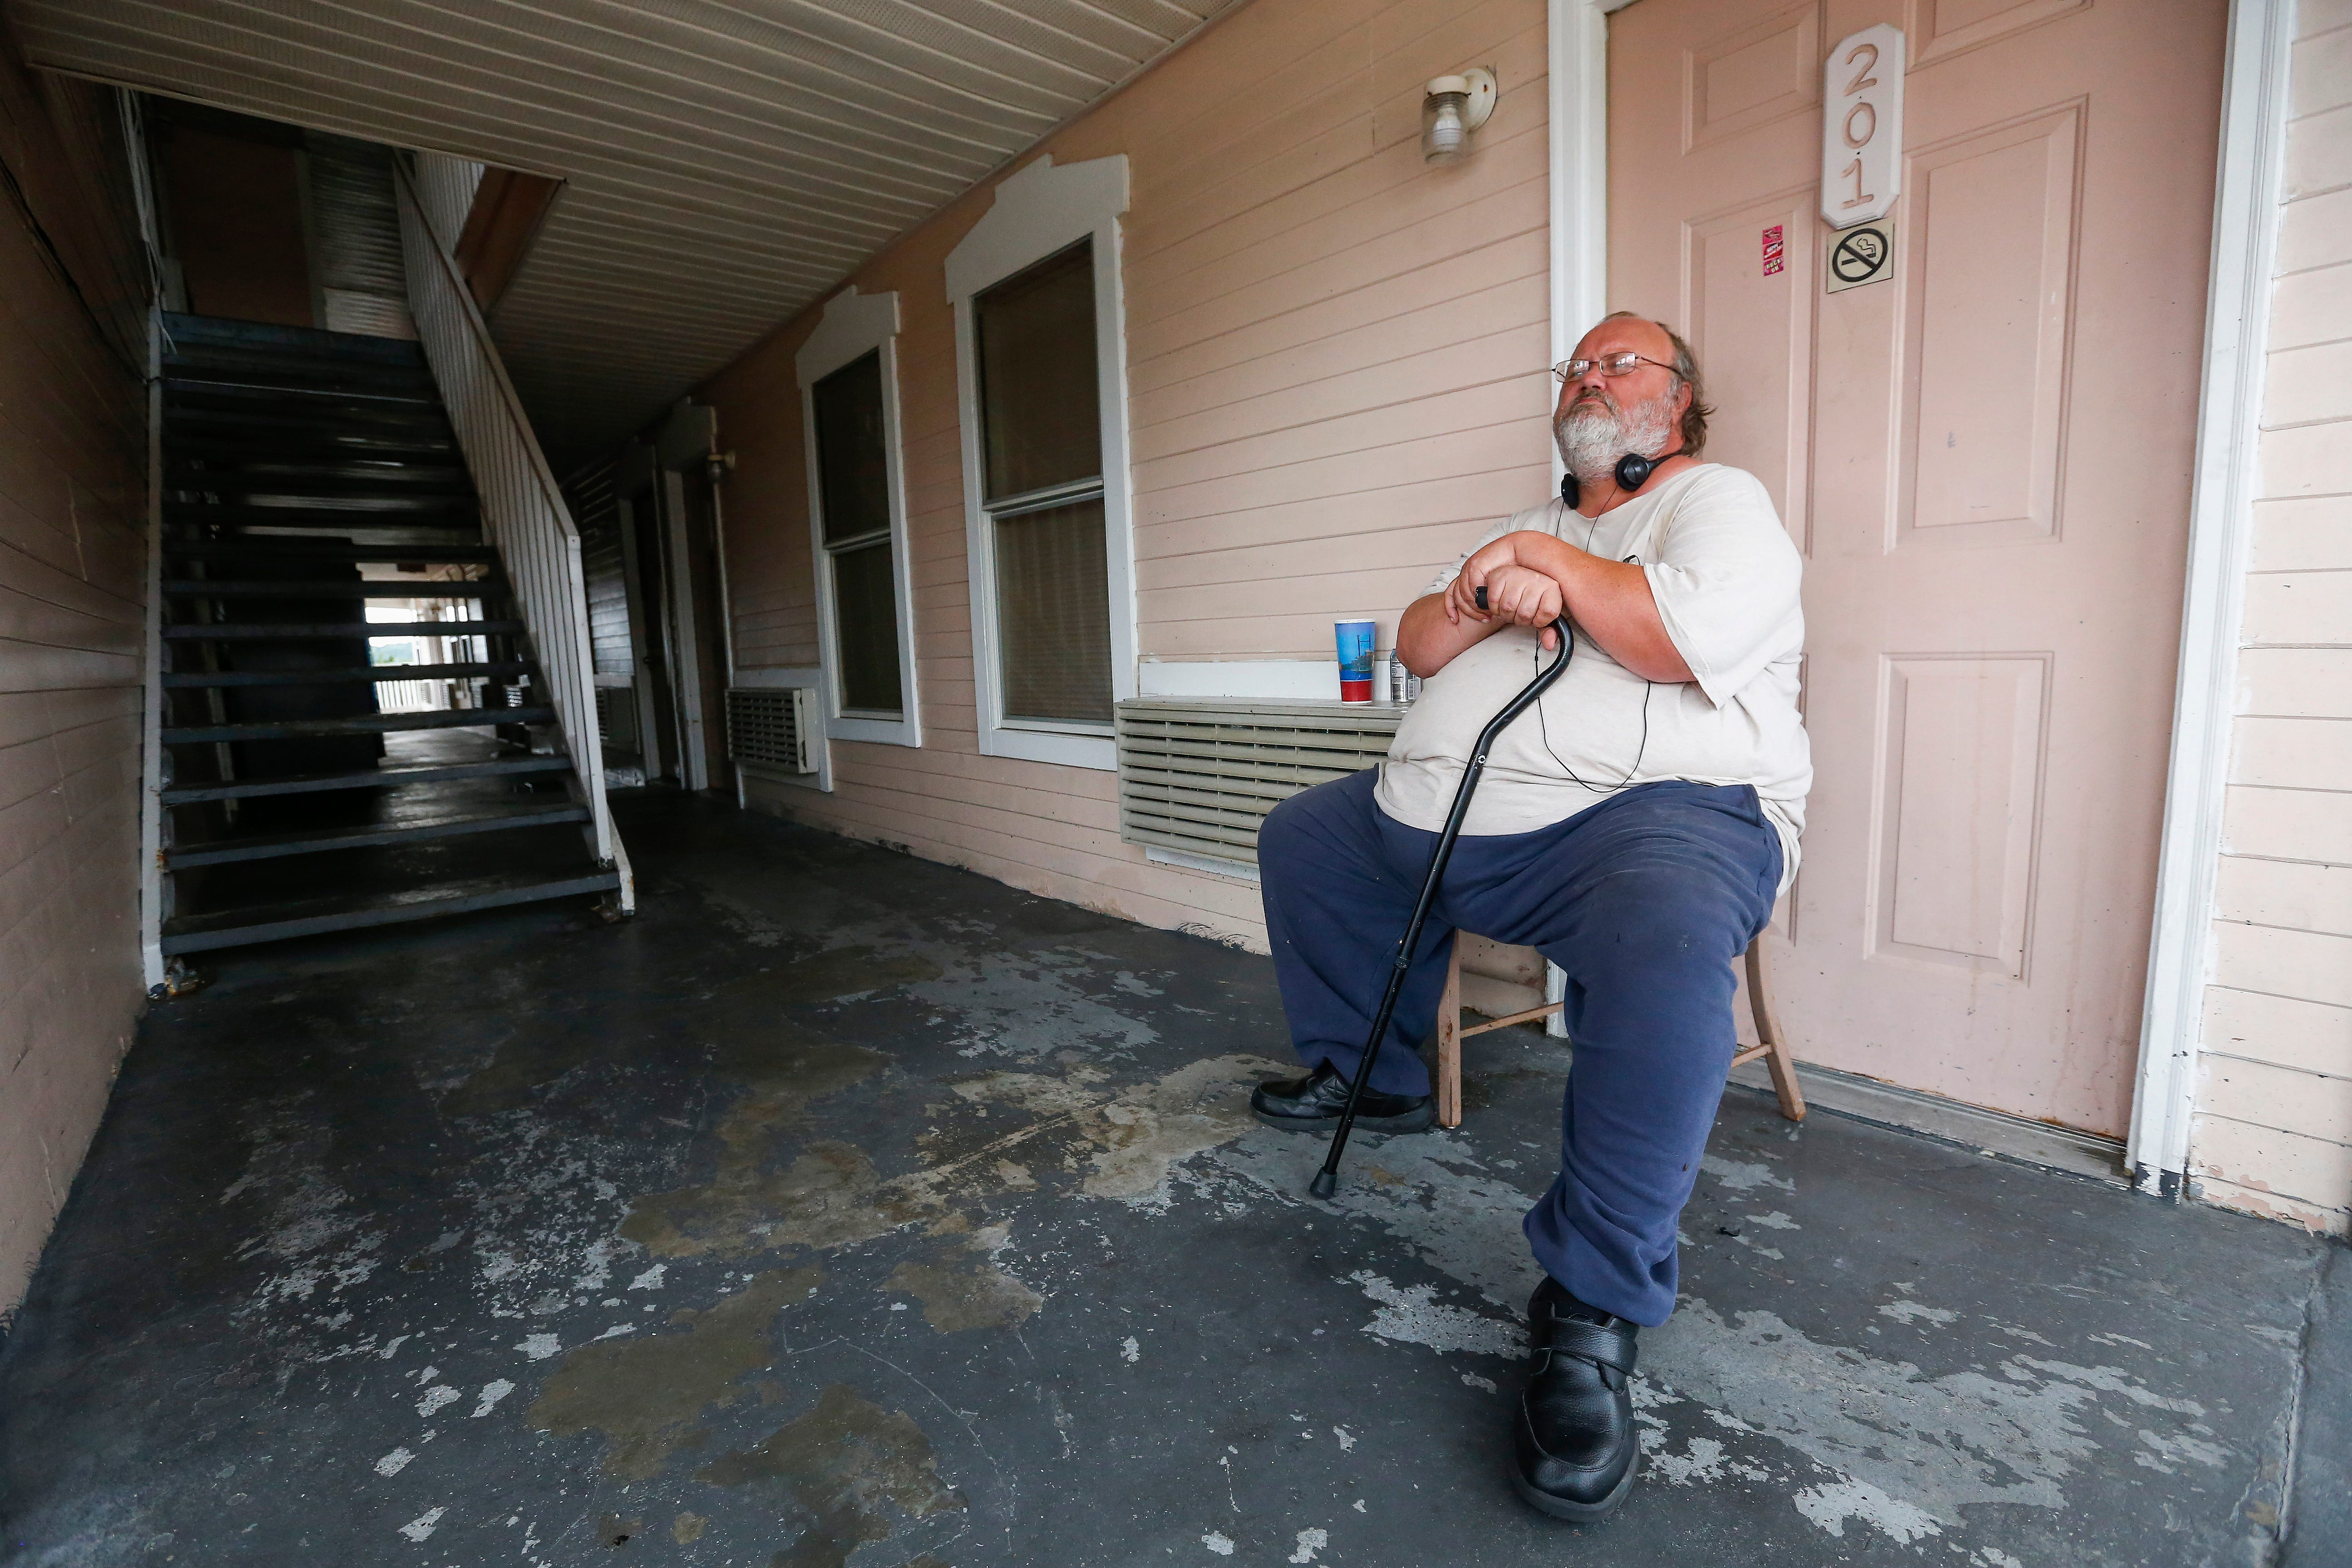 Rev. David Ellis sits outside his room at the Queen Anne Motel and watches the world go by on the Branson Strip on Wednesday, July 18, 2018.